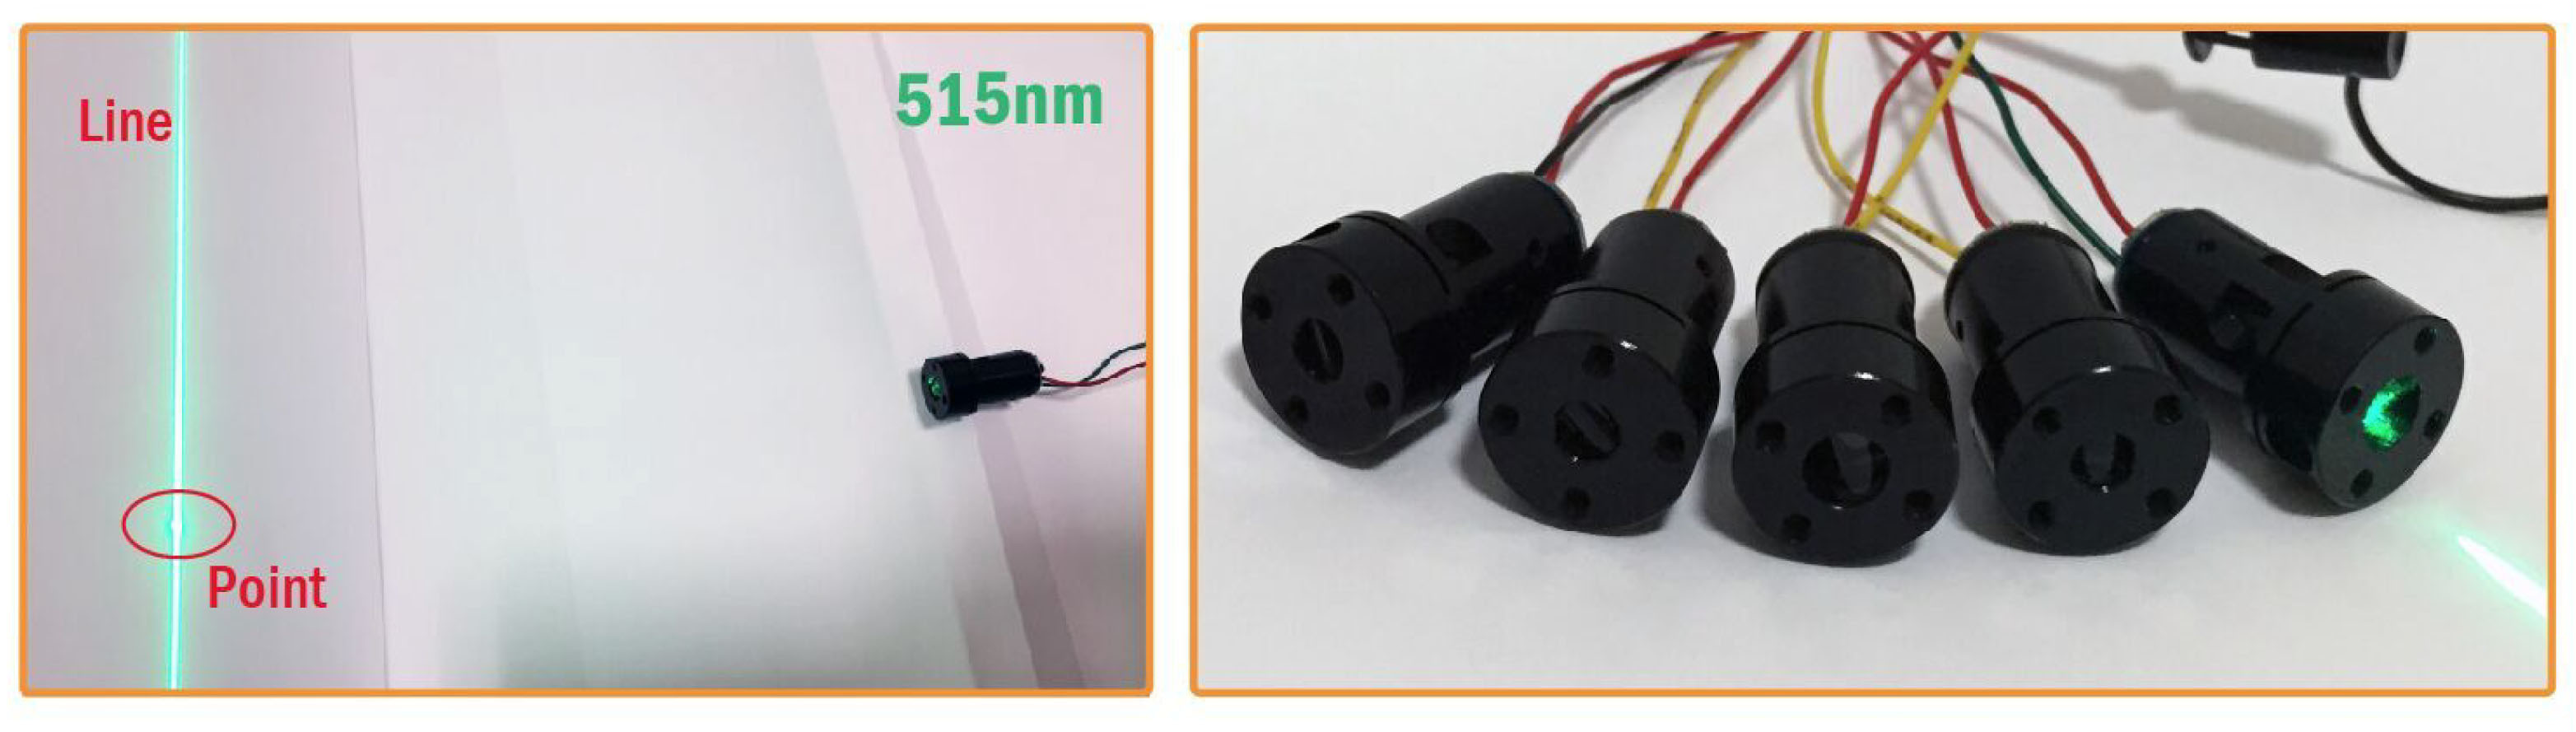 Red /Green Laser Modules for Sewing Machines, Golf Field and All Kinds of Application.